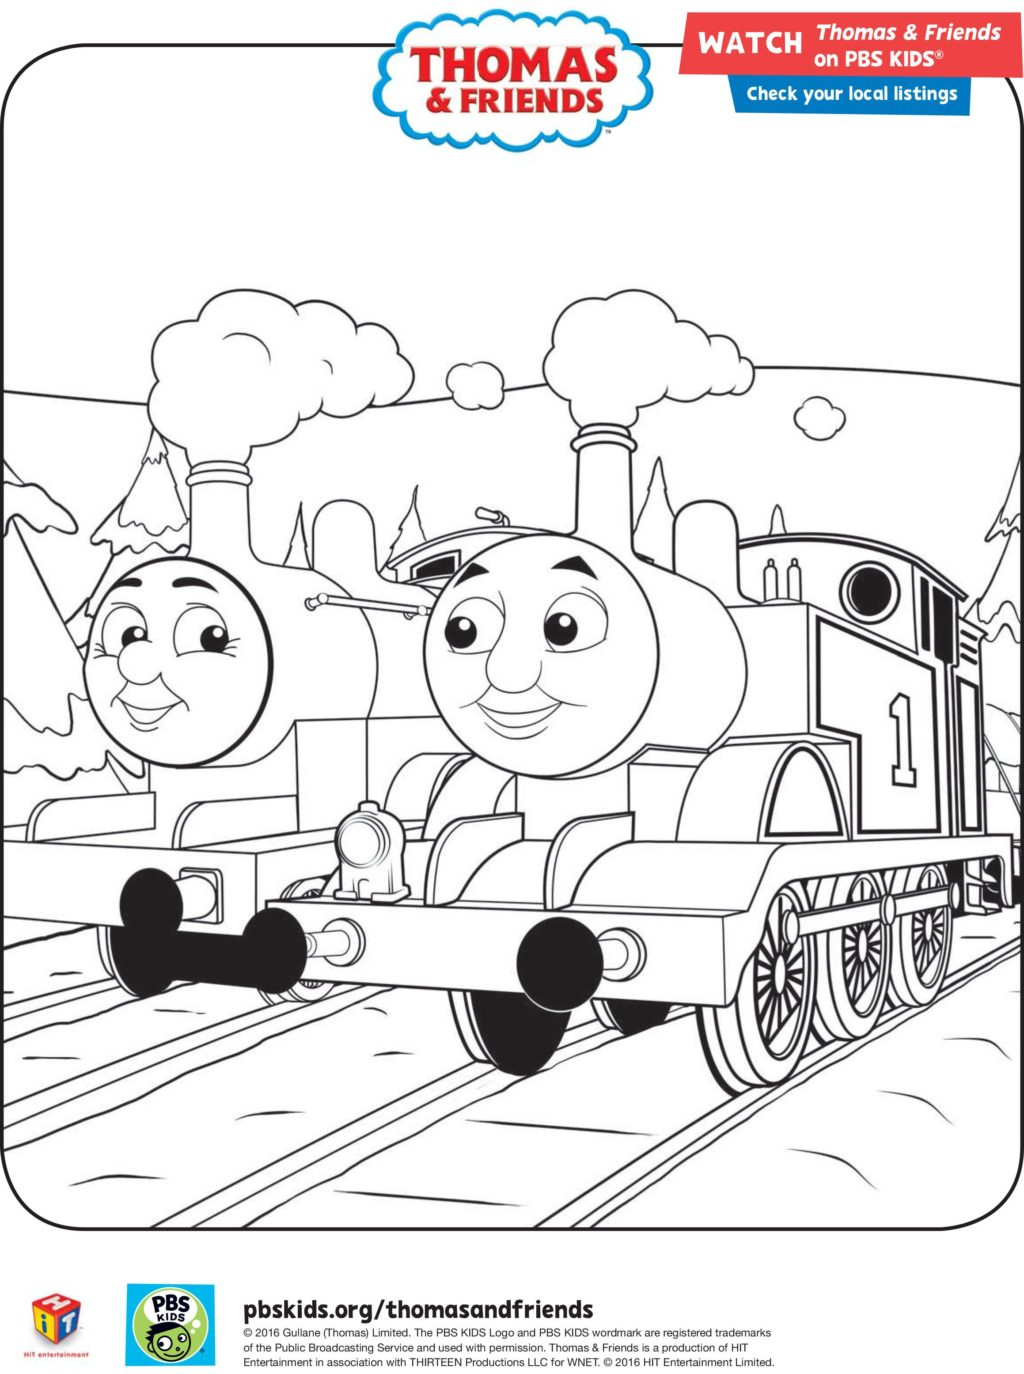 Thomas And Friends Coloring Pages Coloring Book World Stunning Thomas And Friendsng Pages Image